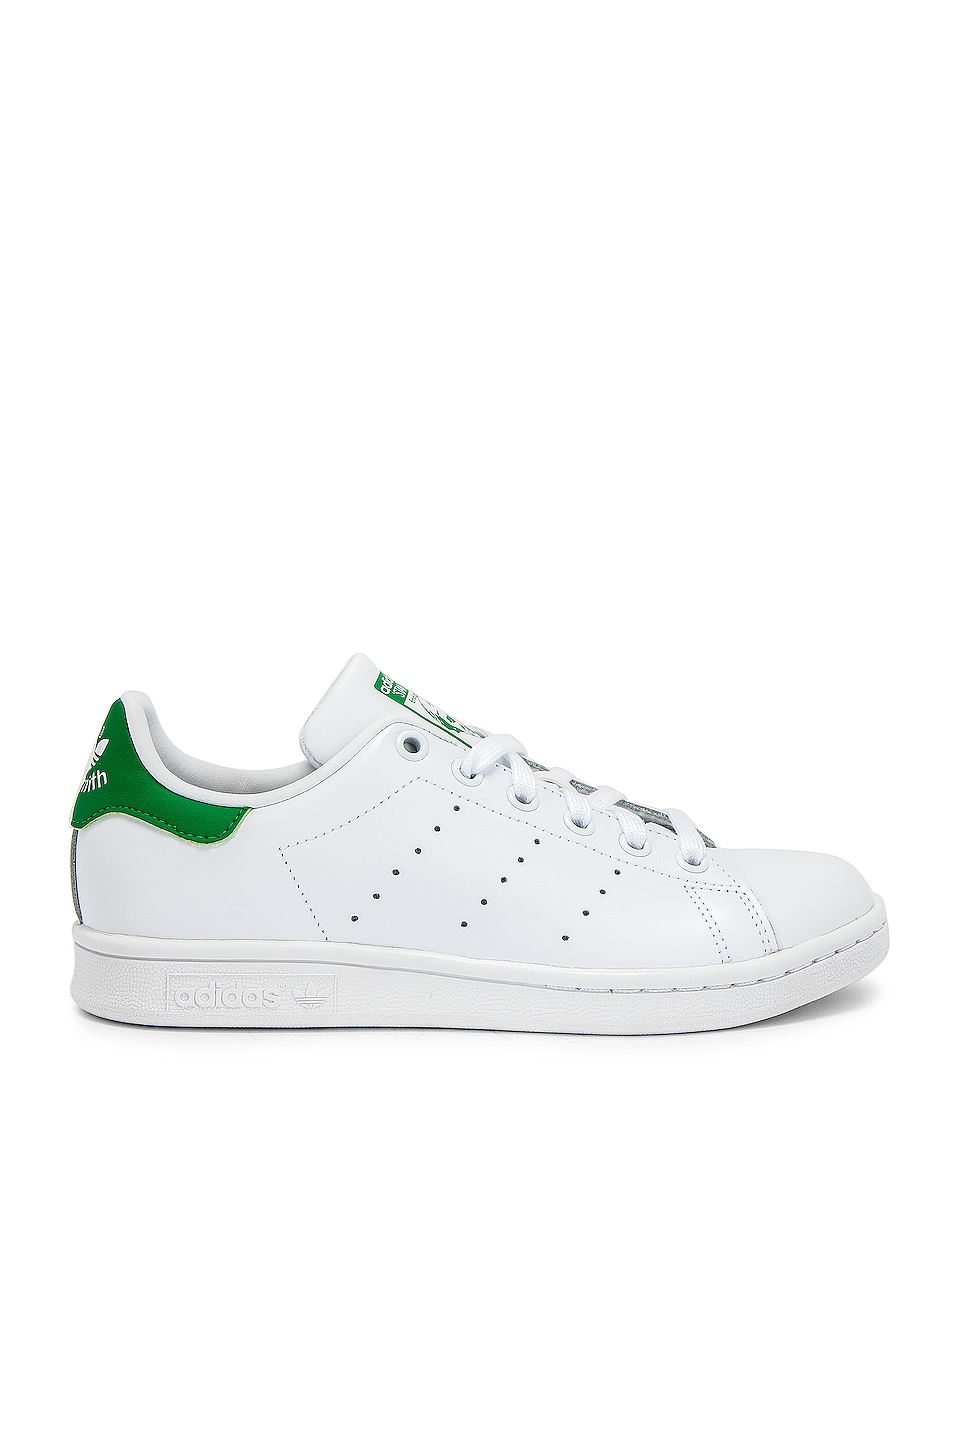 adidas Originals Stan Smith Sneaker in White & Green